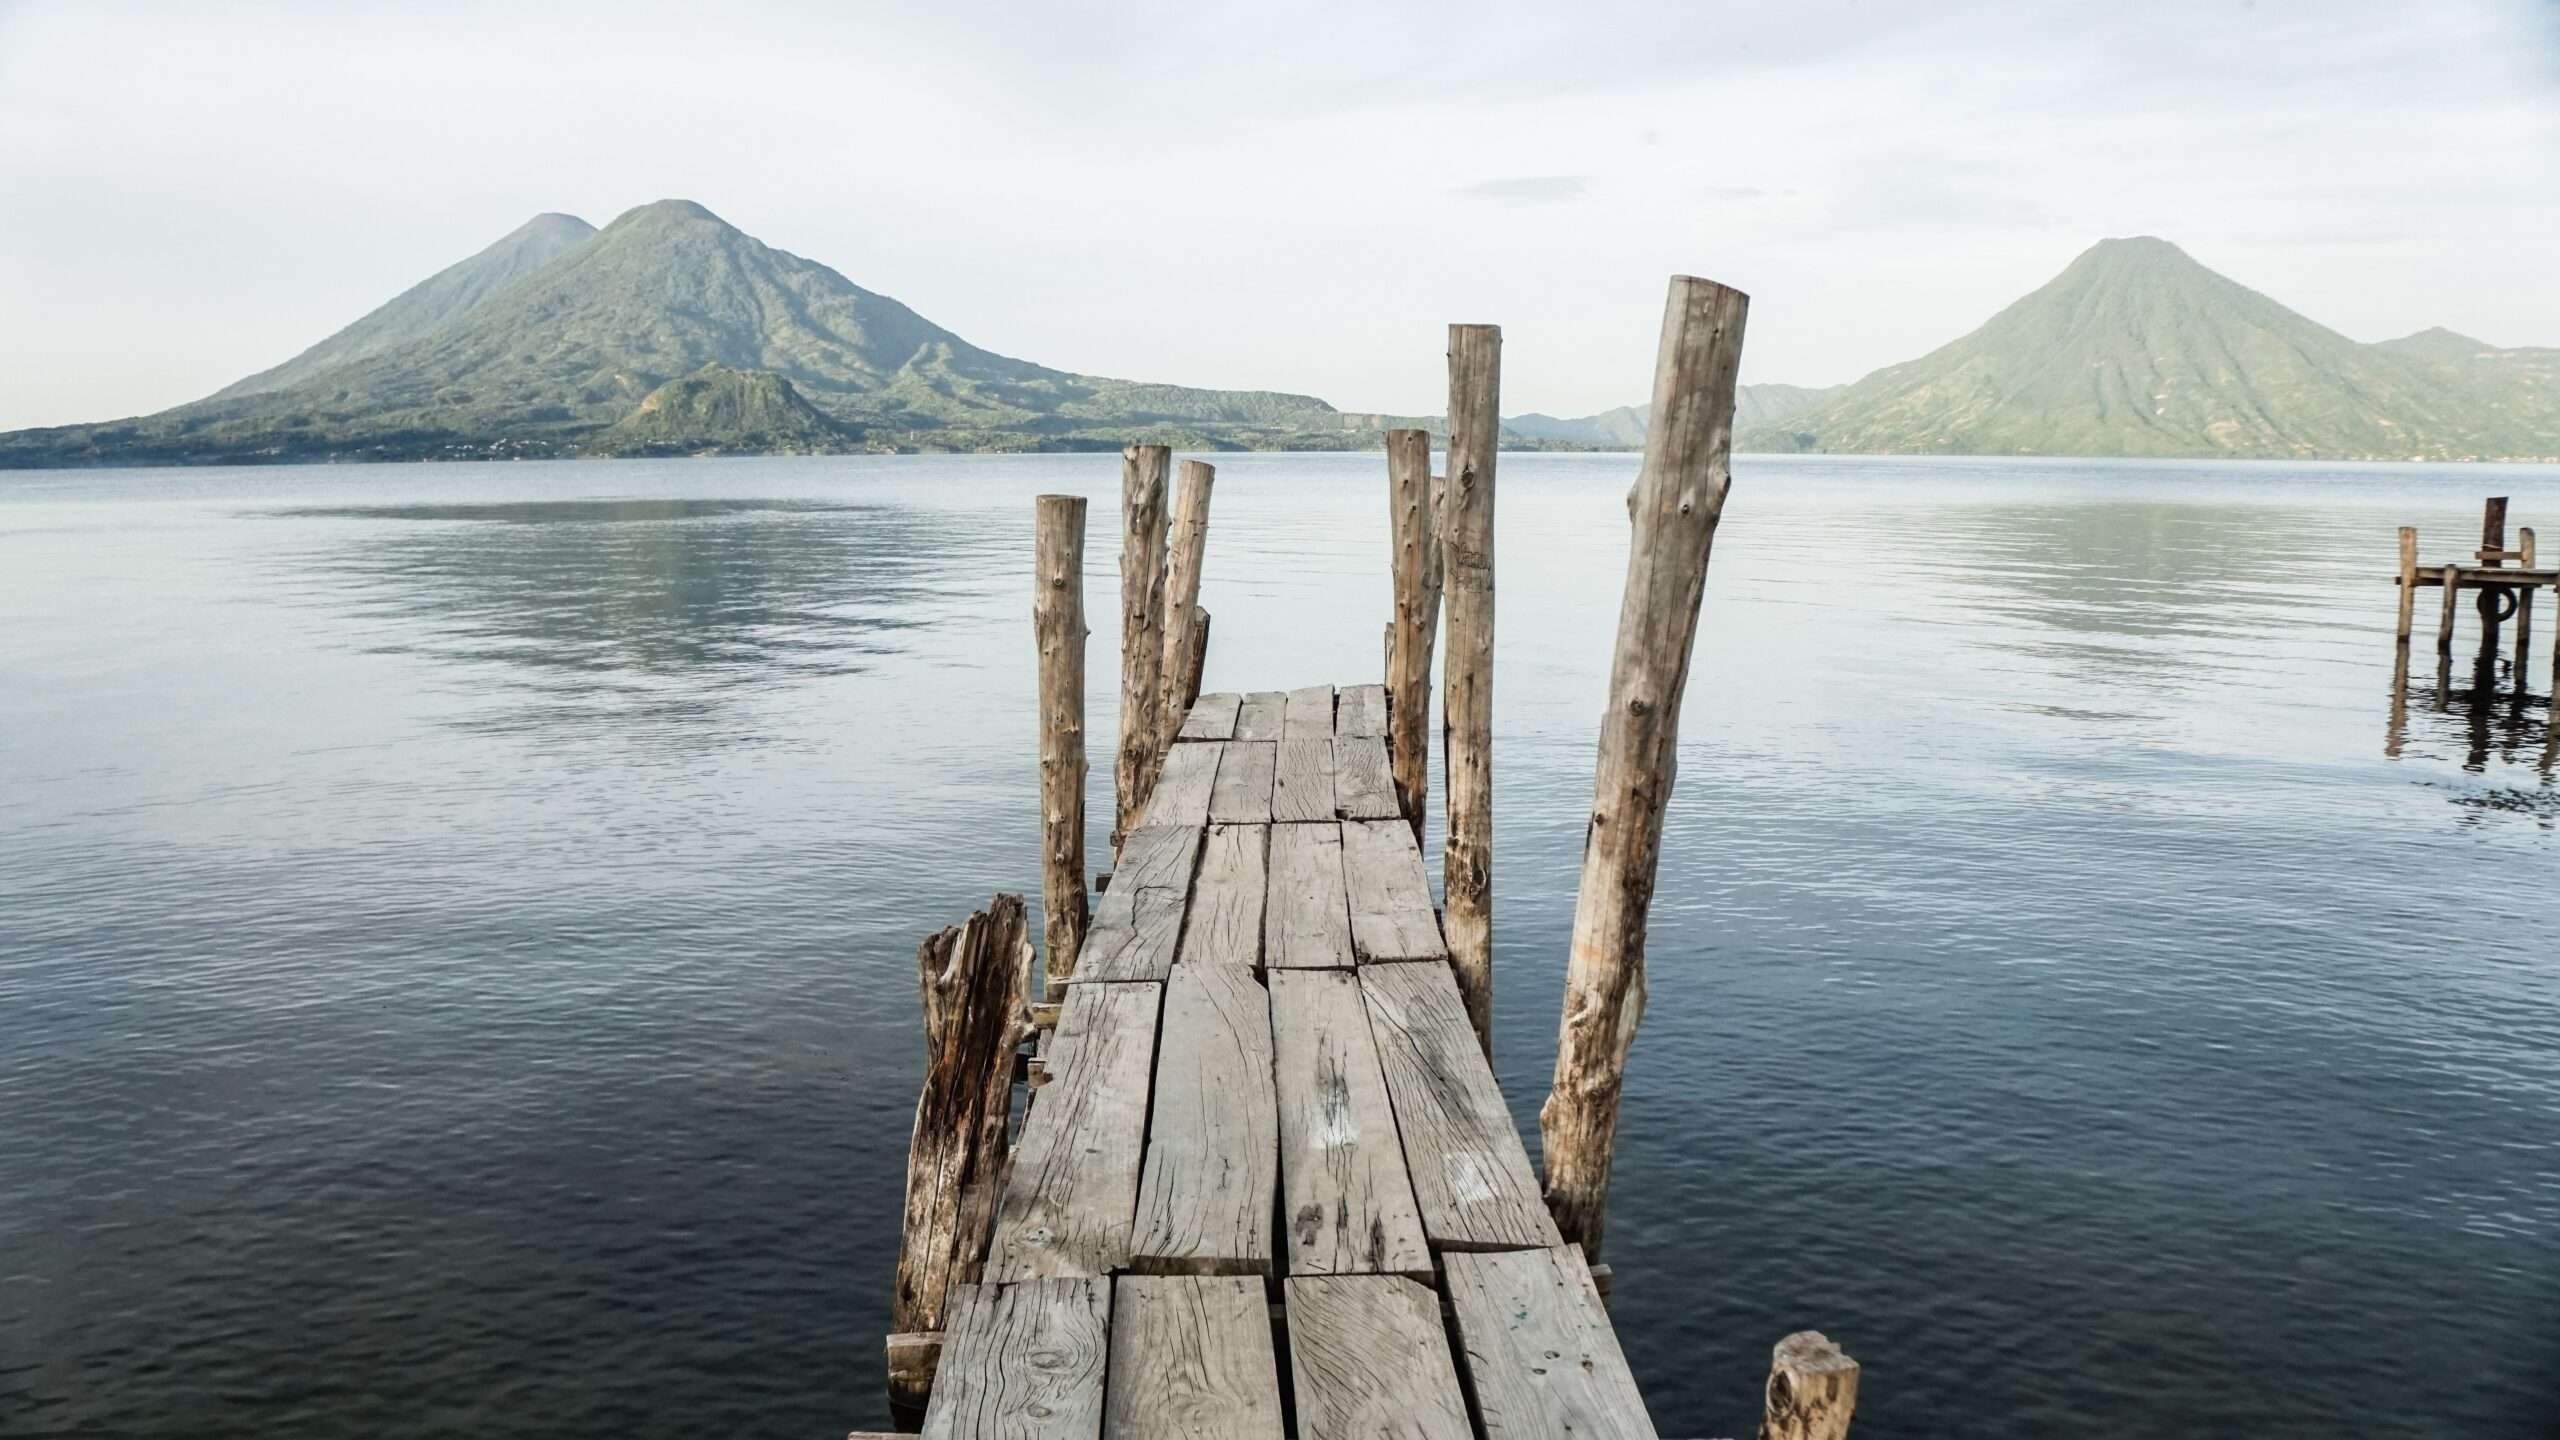 a rickety wooden dock reaches out over the water in Lake Atitlan Guatemala